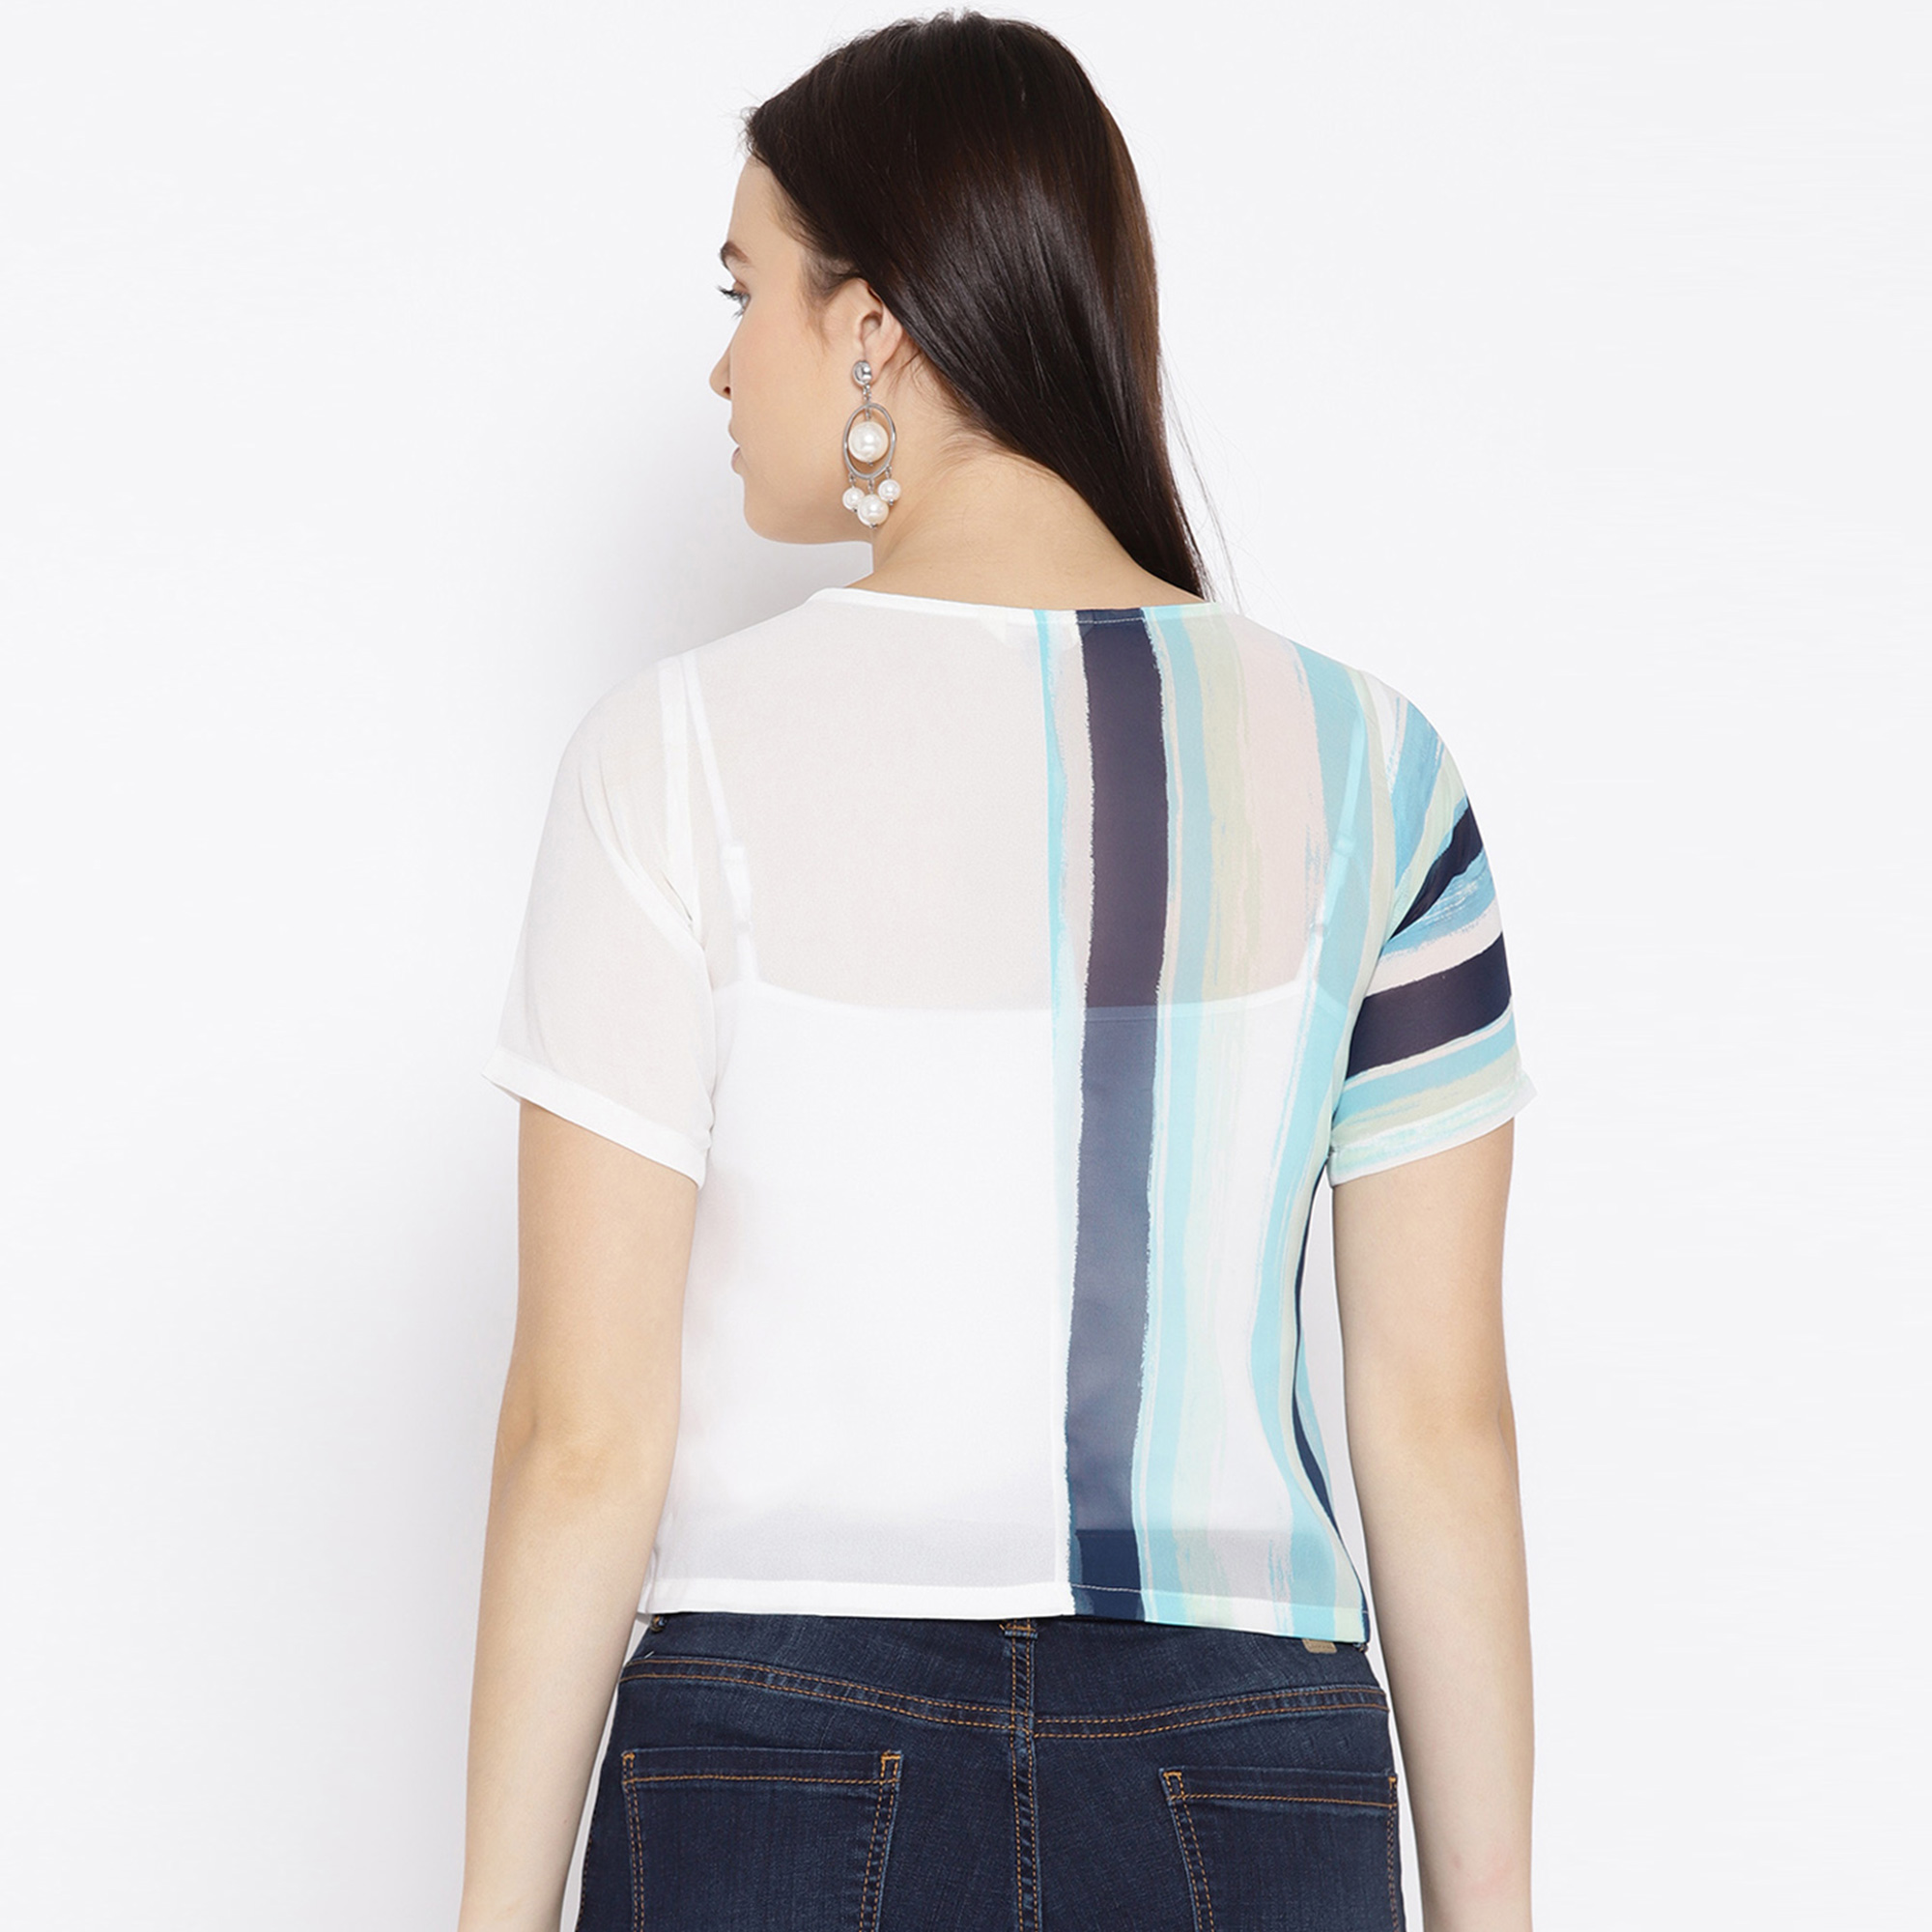 Exotic White Colored Casual Stripes Printed Crepe Top